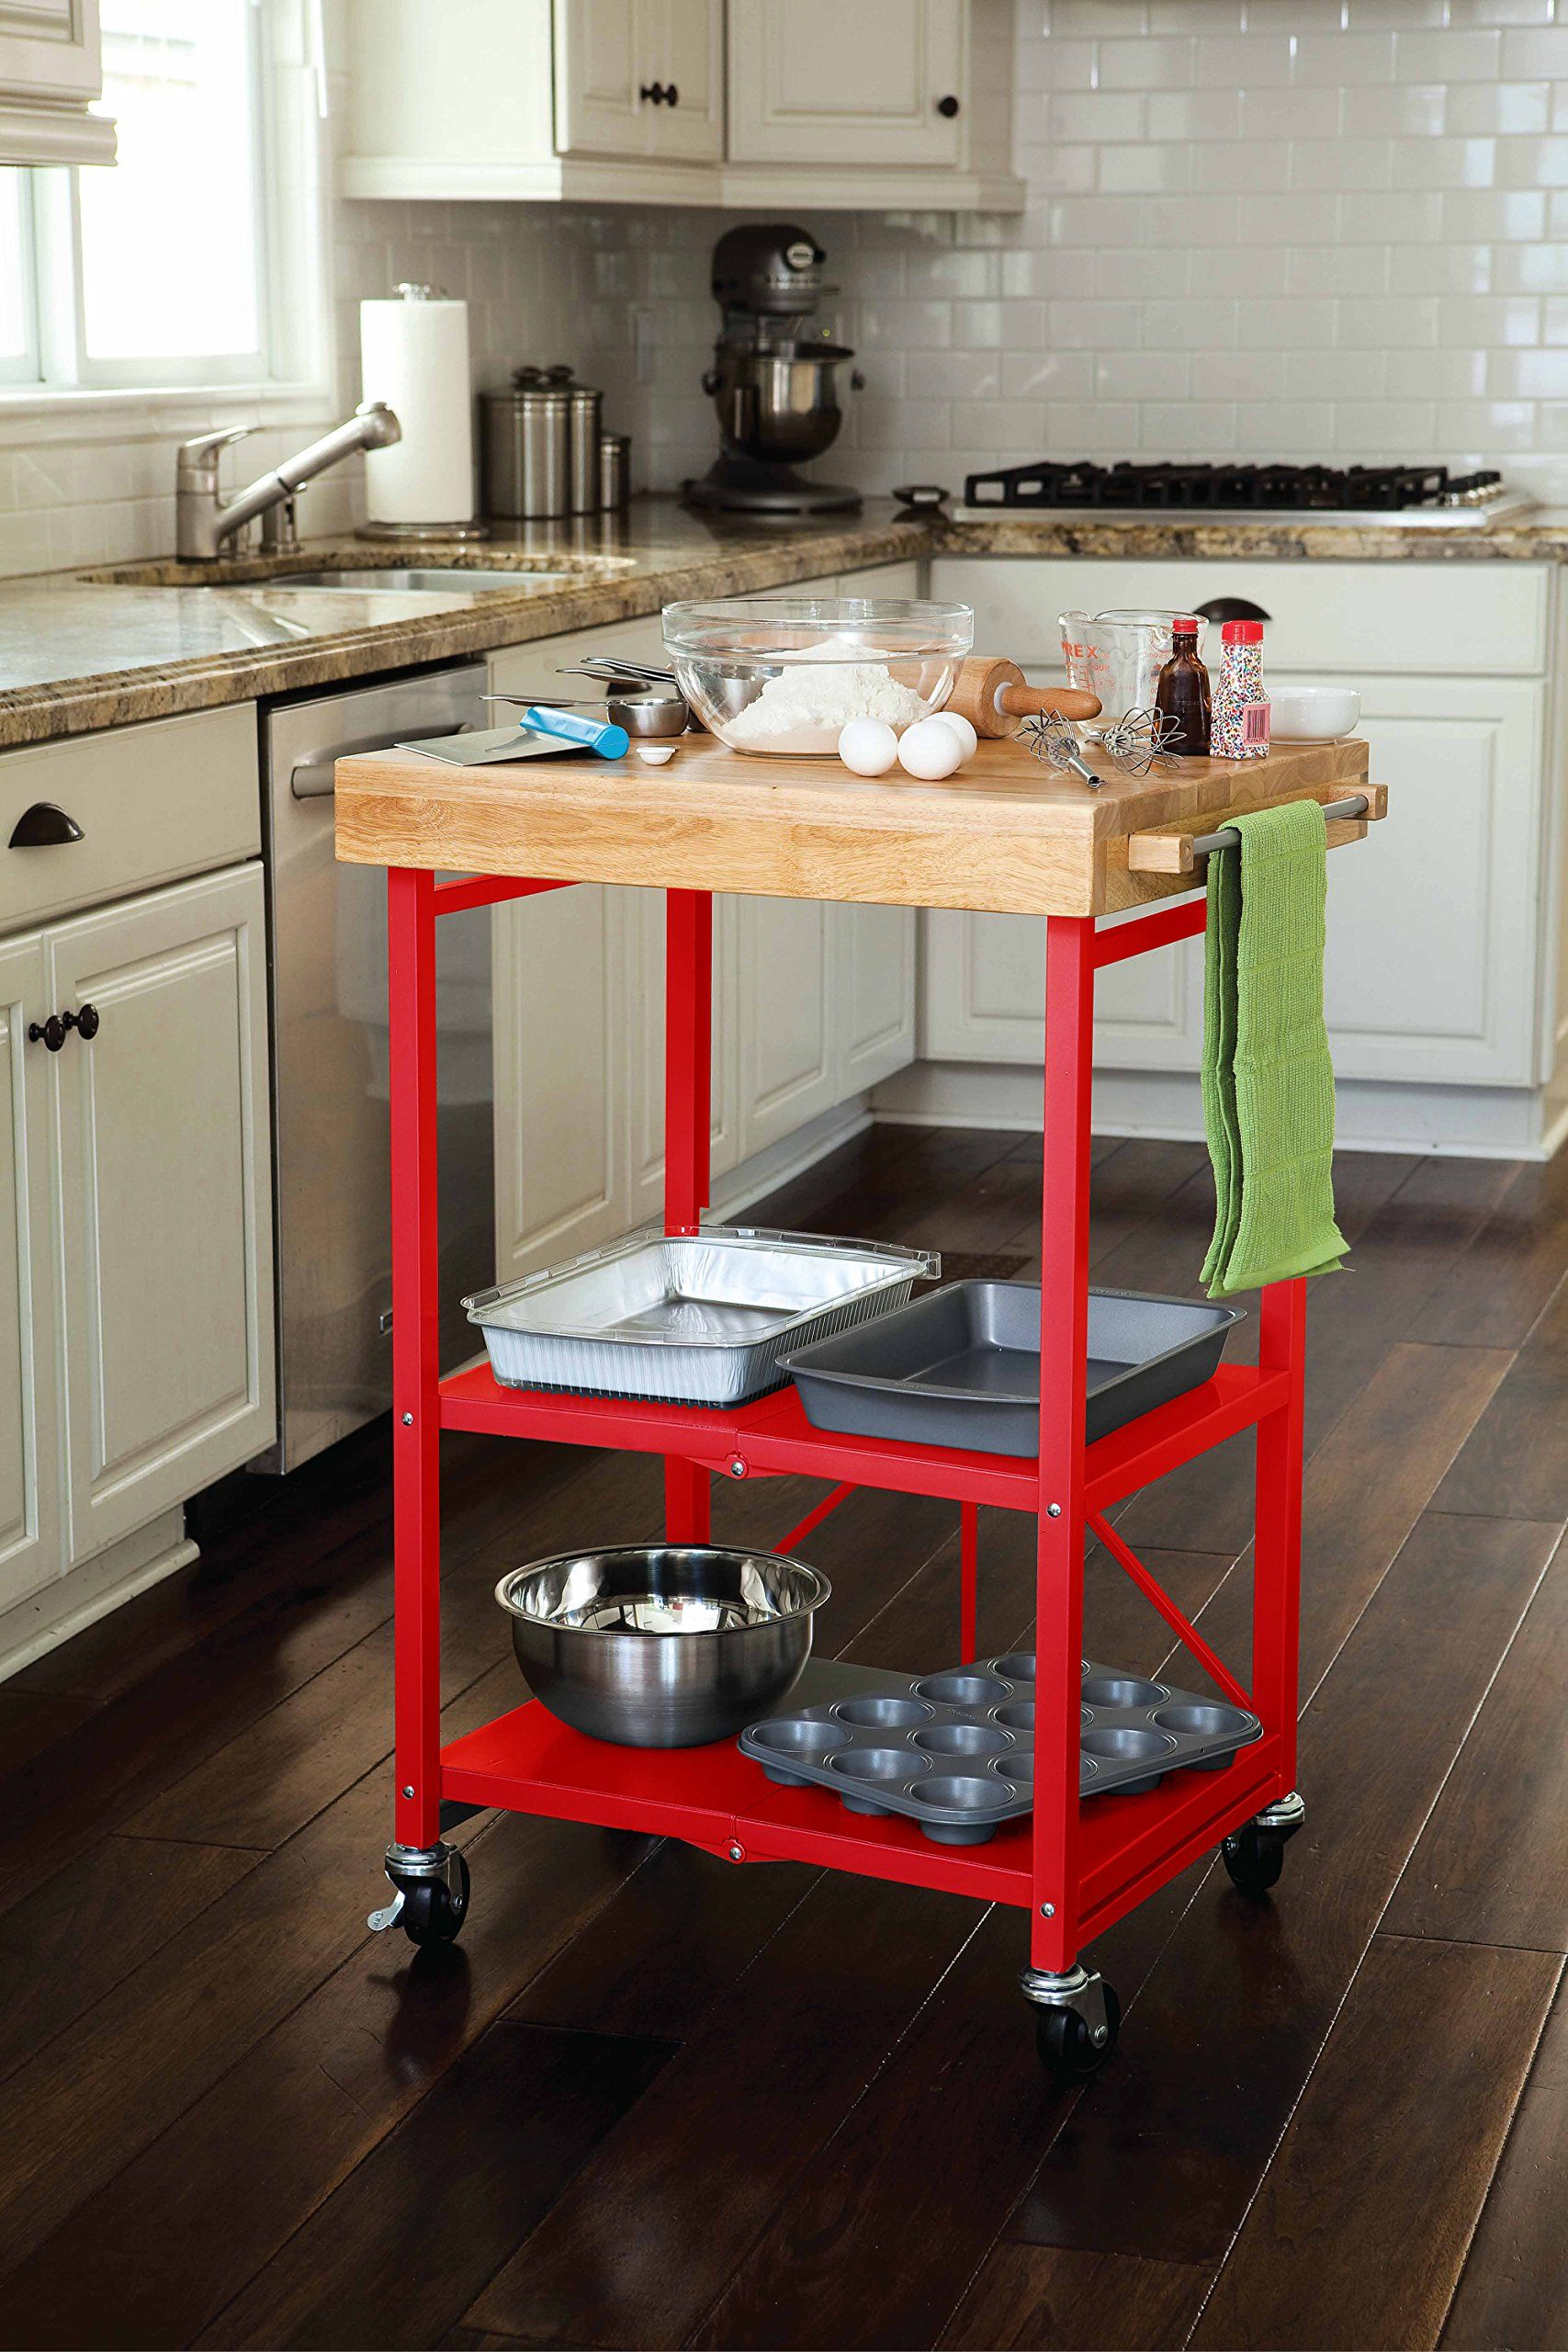 135 amazon origami folding island kitchen cart red 135 amazon origami folding island kitchen cart red furniture jeuxipadfo Choice Image